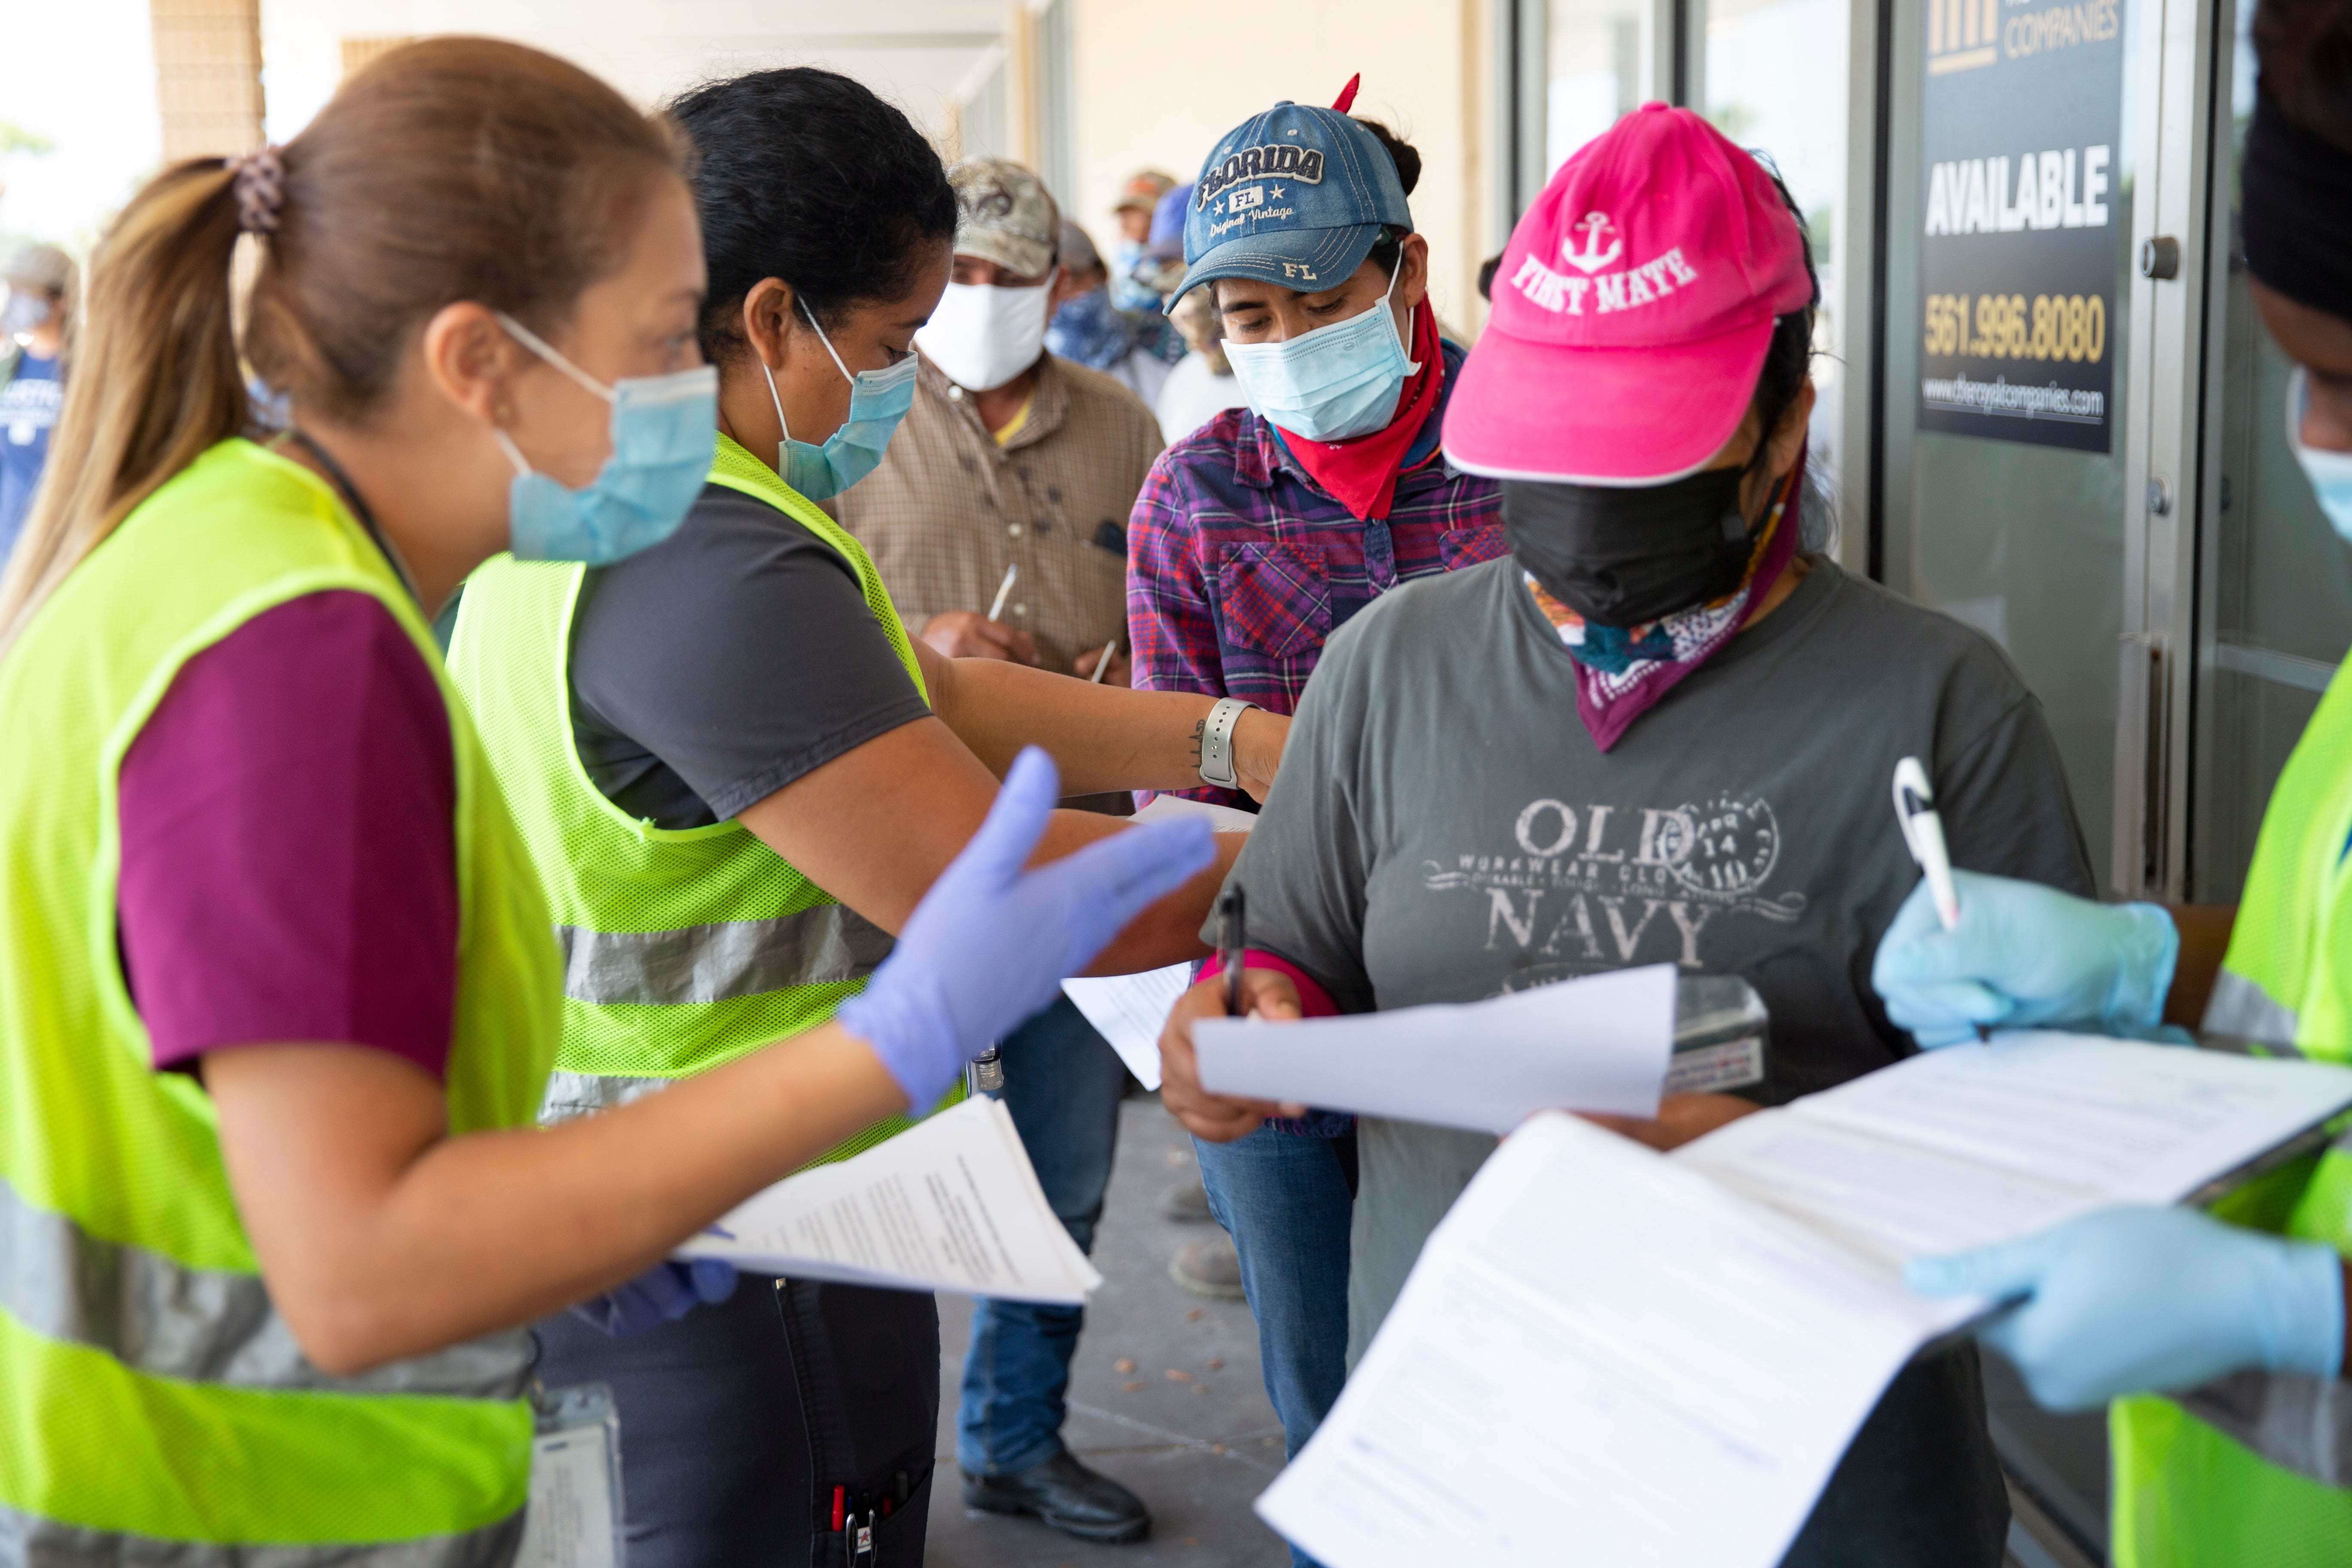 Healthcare Network employees help farmworkers fill out their paperwork as they wait in line during a vaccine clinic for farmworkers at the Florida Department of Health in Collier County site on Lake Trafford Road in Immokalee on Saturday, April 10, 2021.